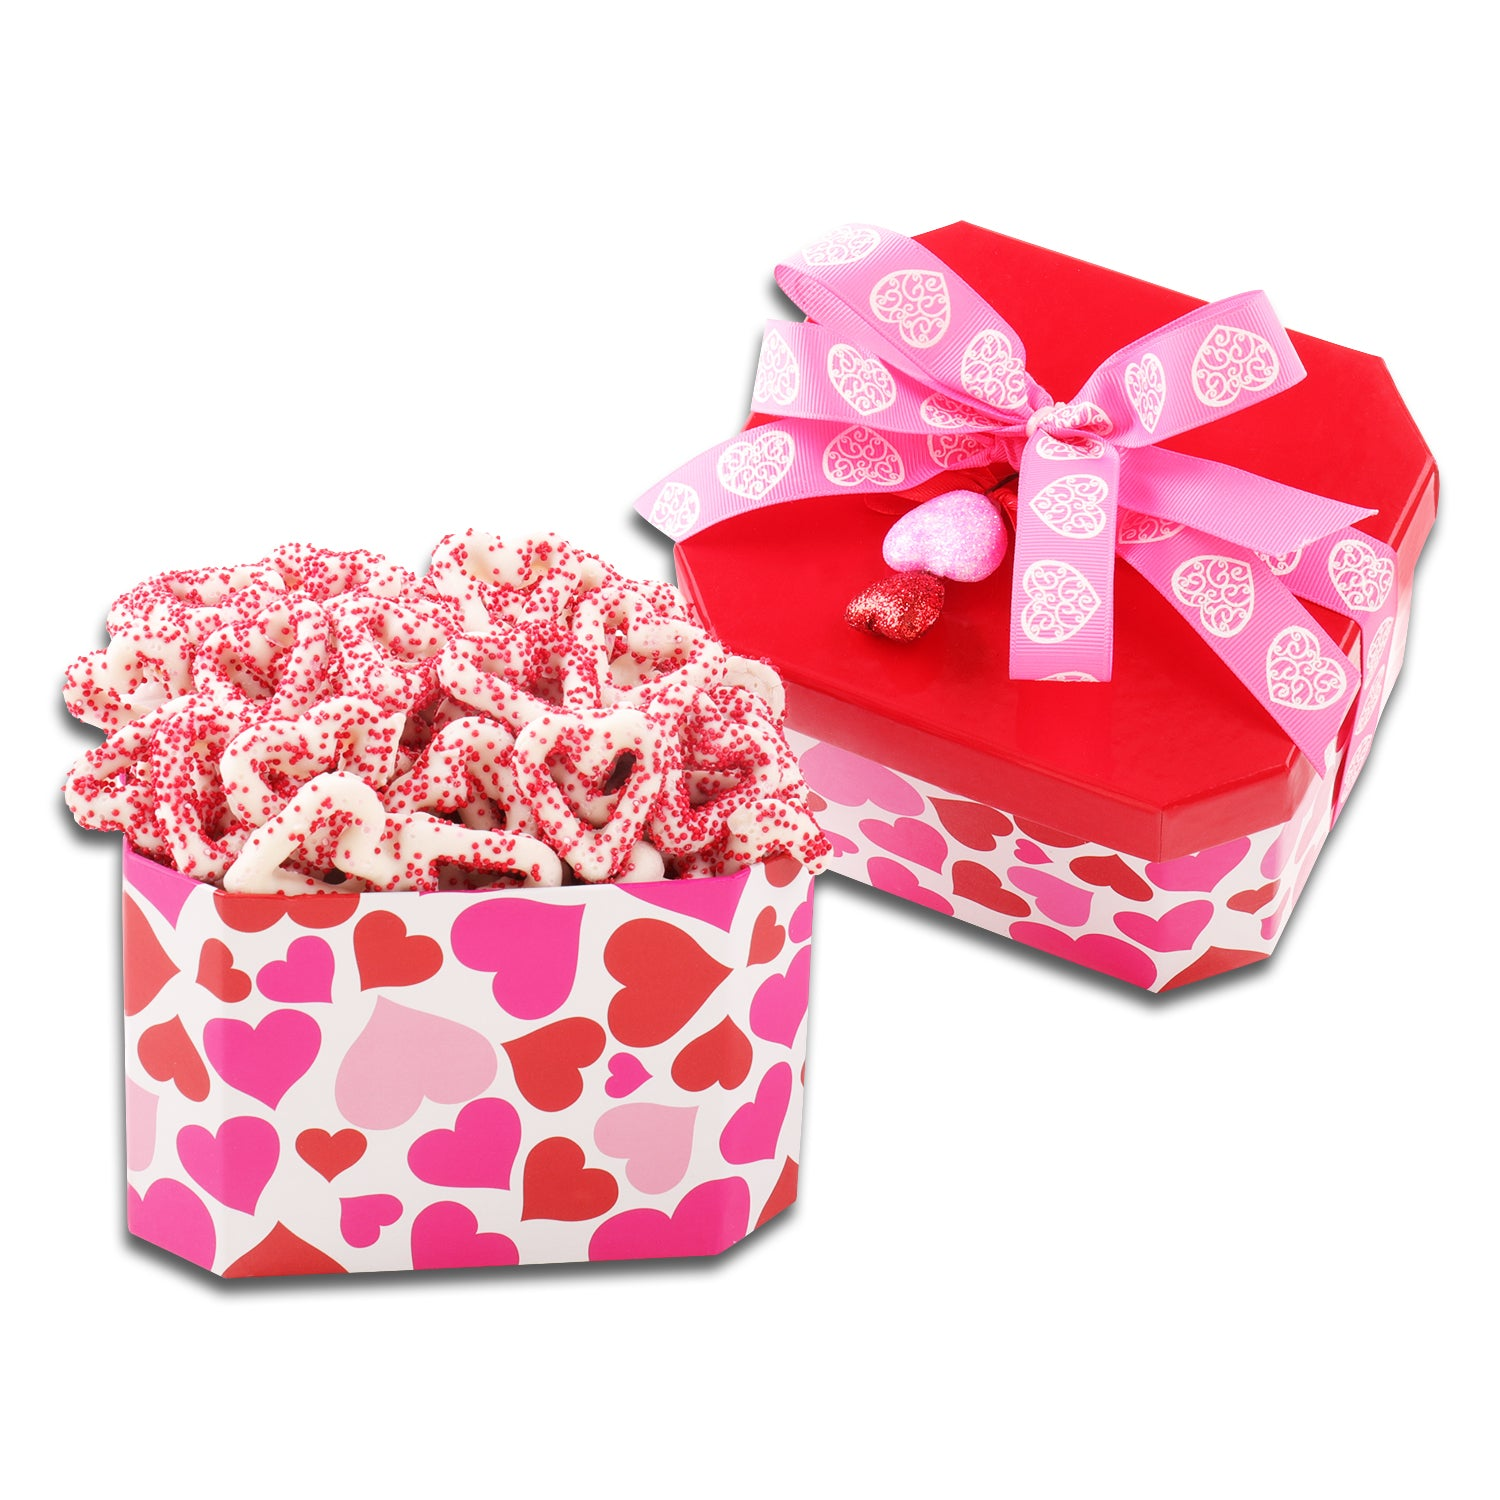 Chocolate Dipped Heart Shaped Pretzels Gift